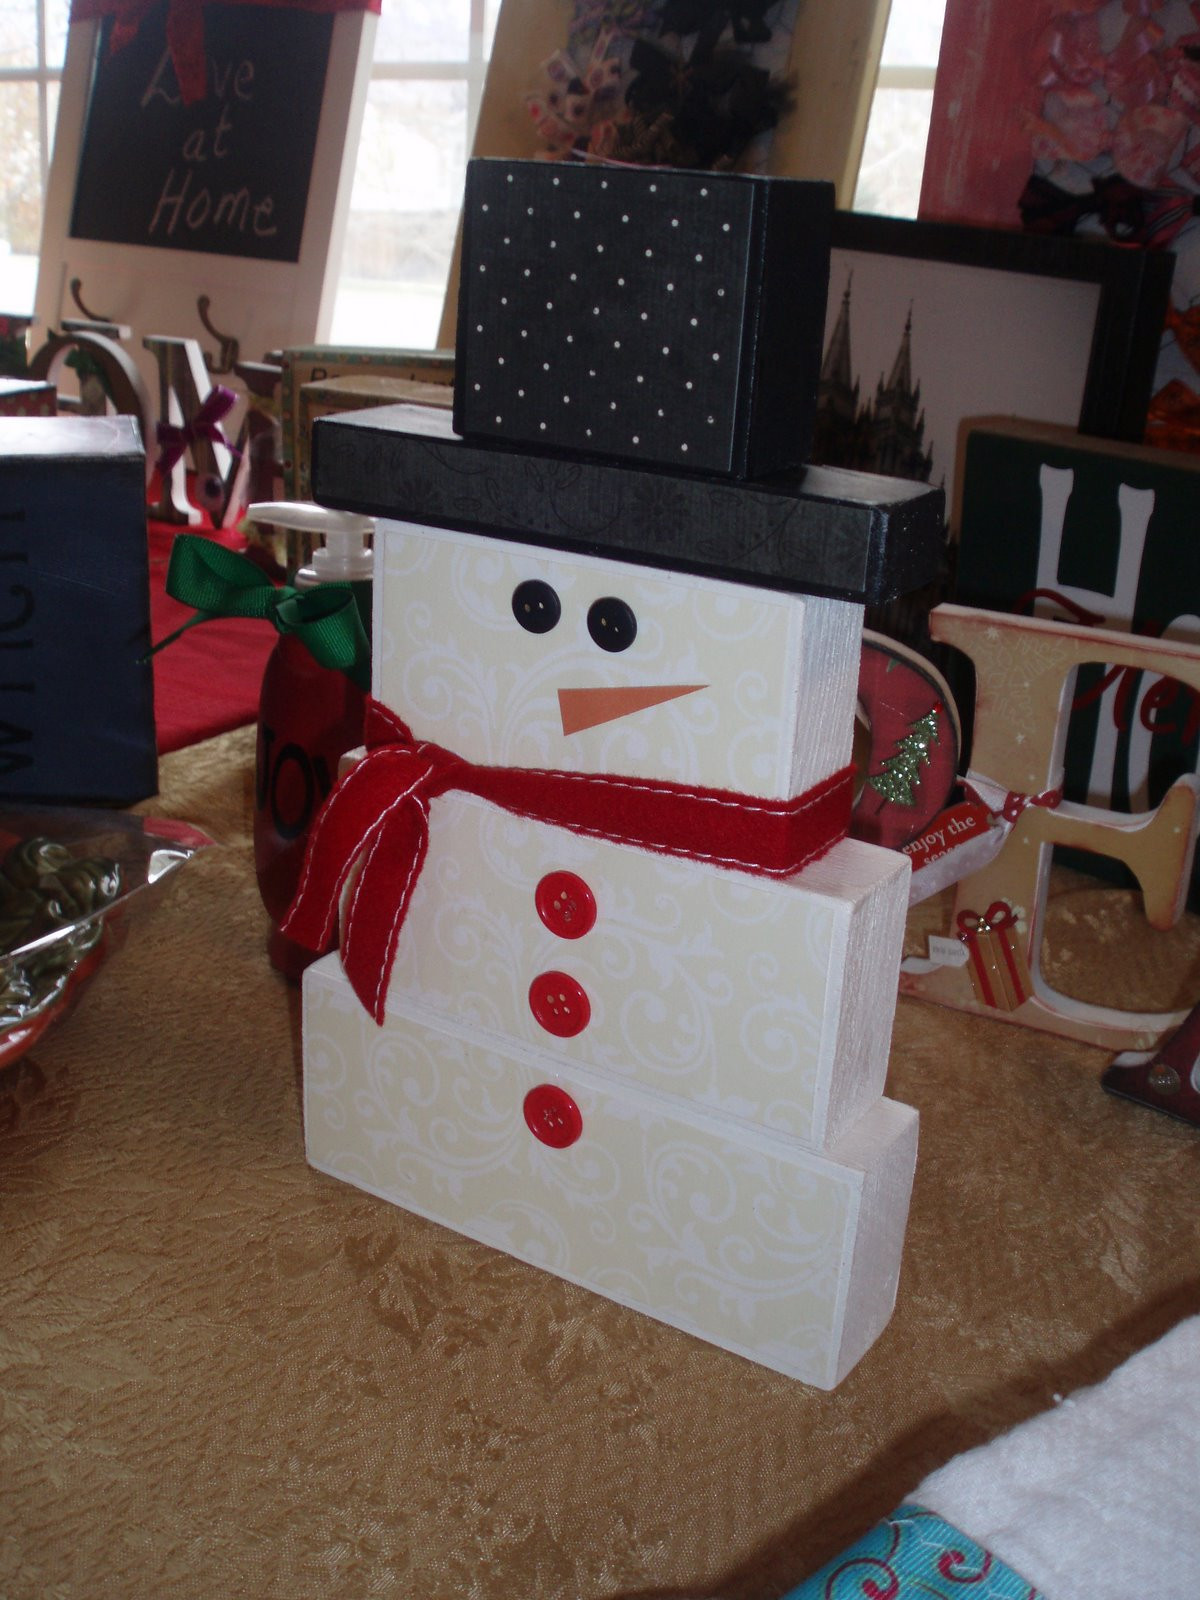 Best ideas about Christmas Wood Craft Projects . Save or Pin The Stoddards Christmas Wood Crafts Now.